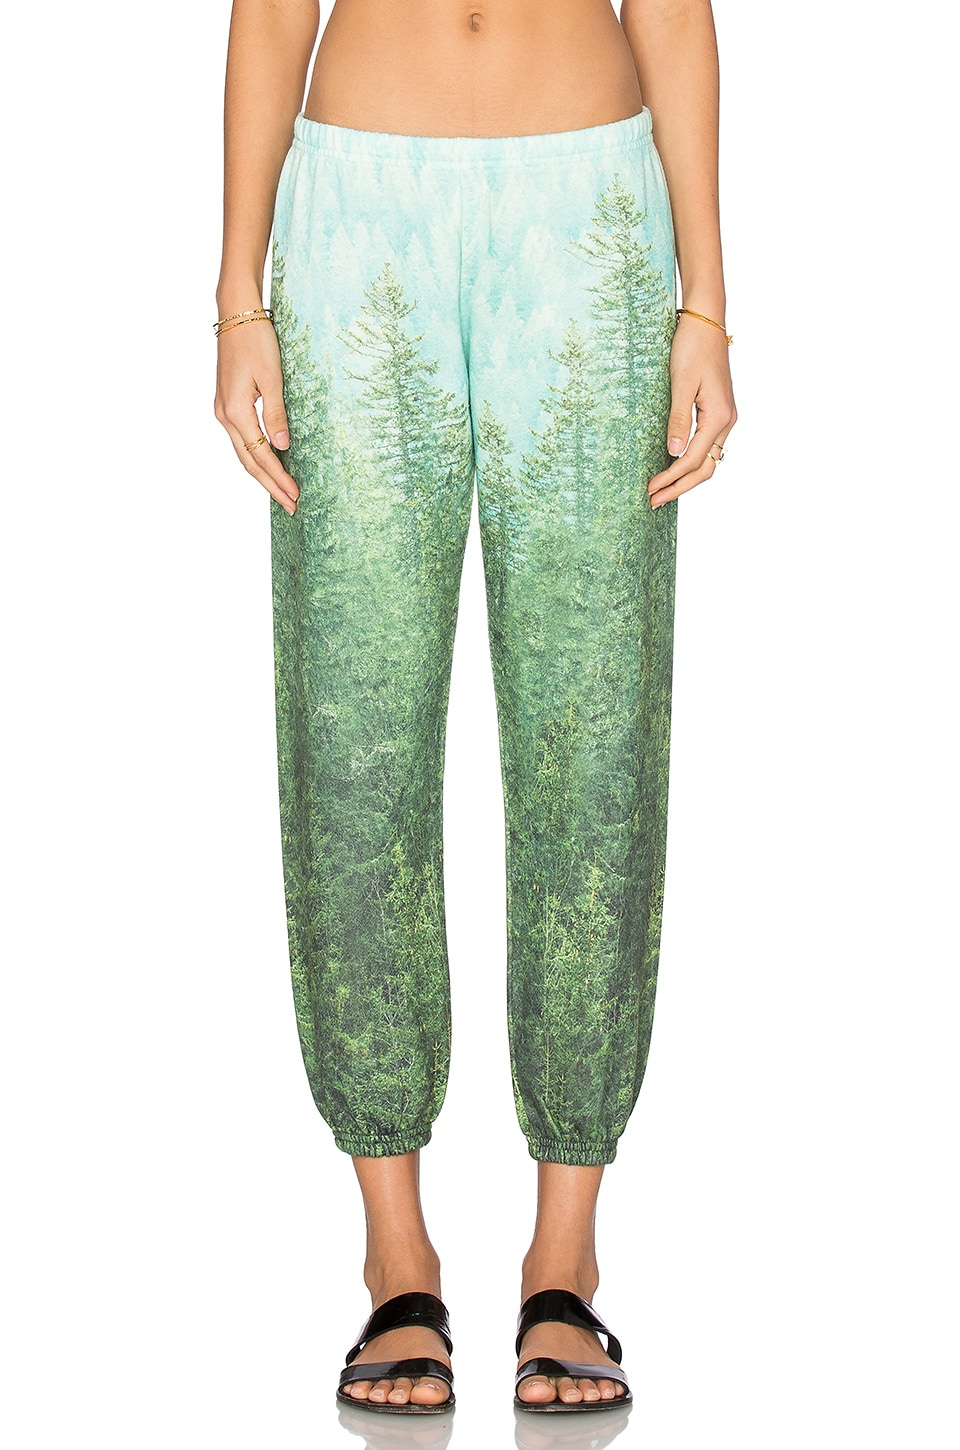 All Things Fabulous Sweatpant in Pine Forest